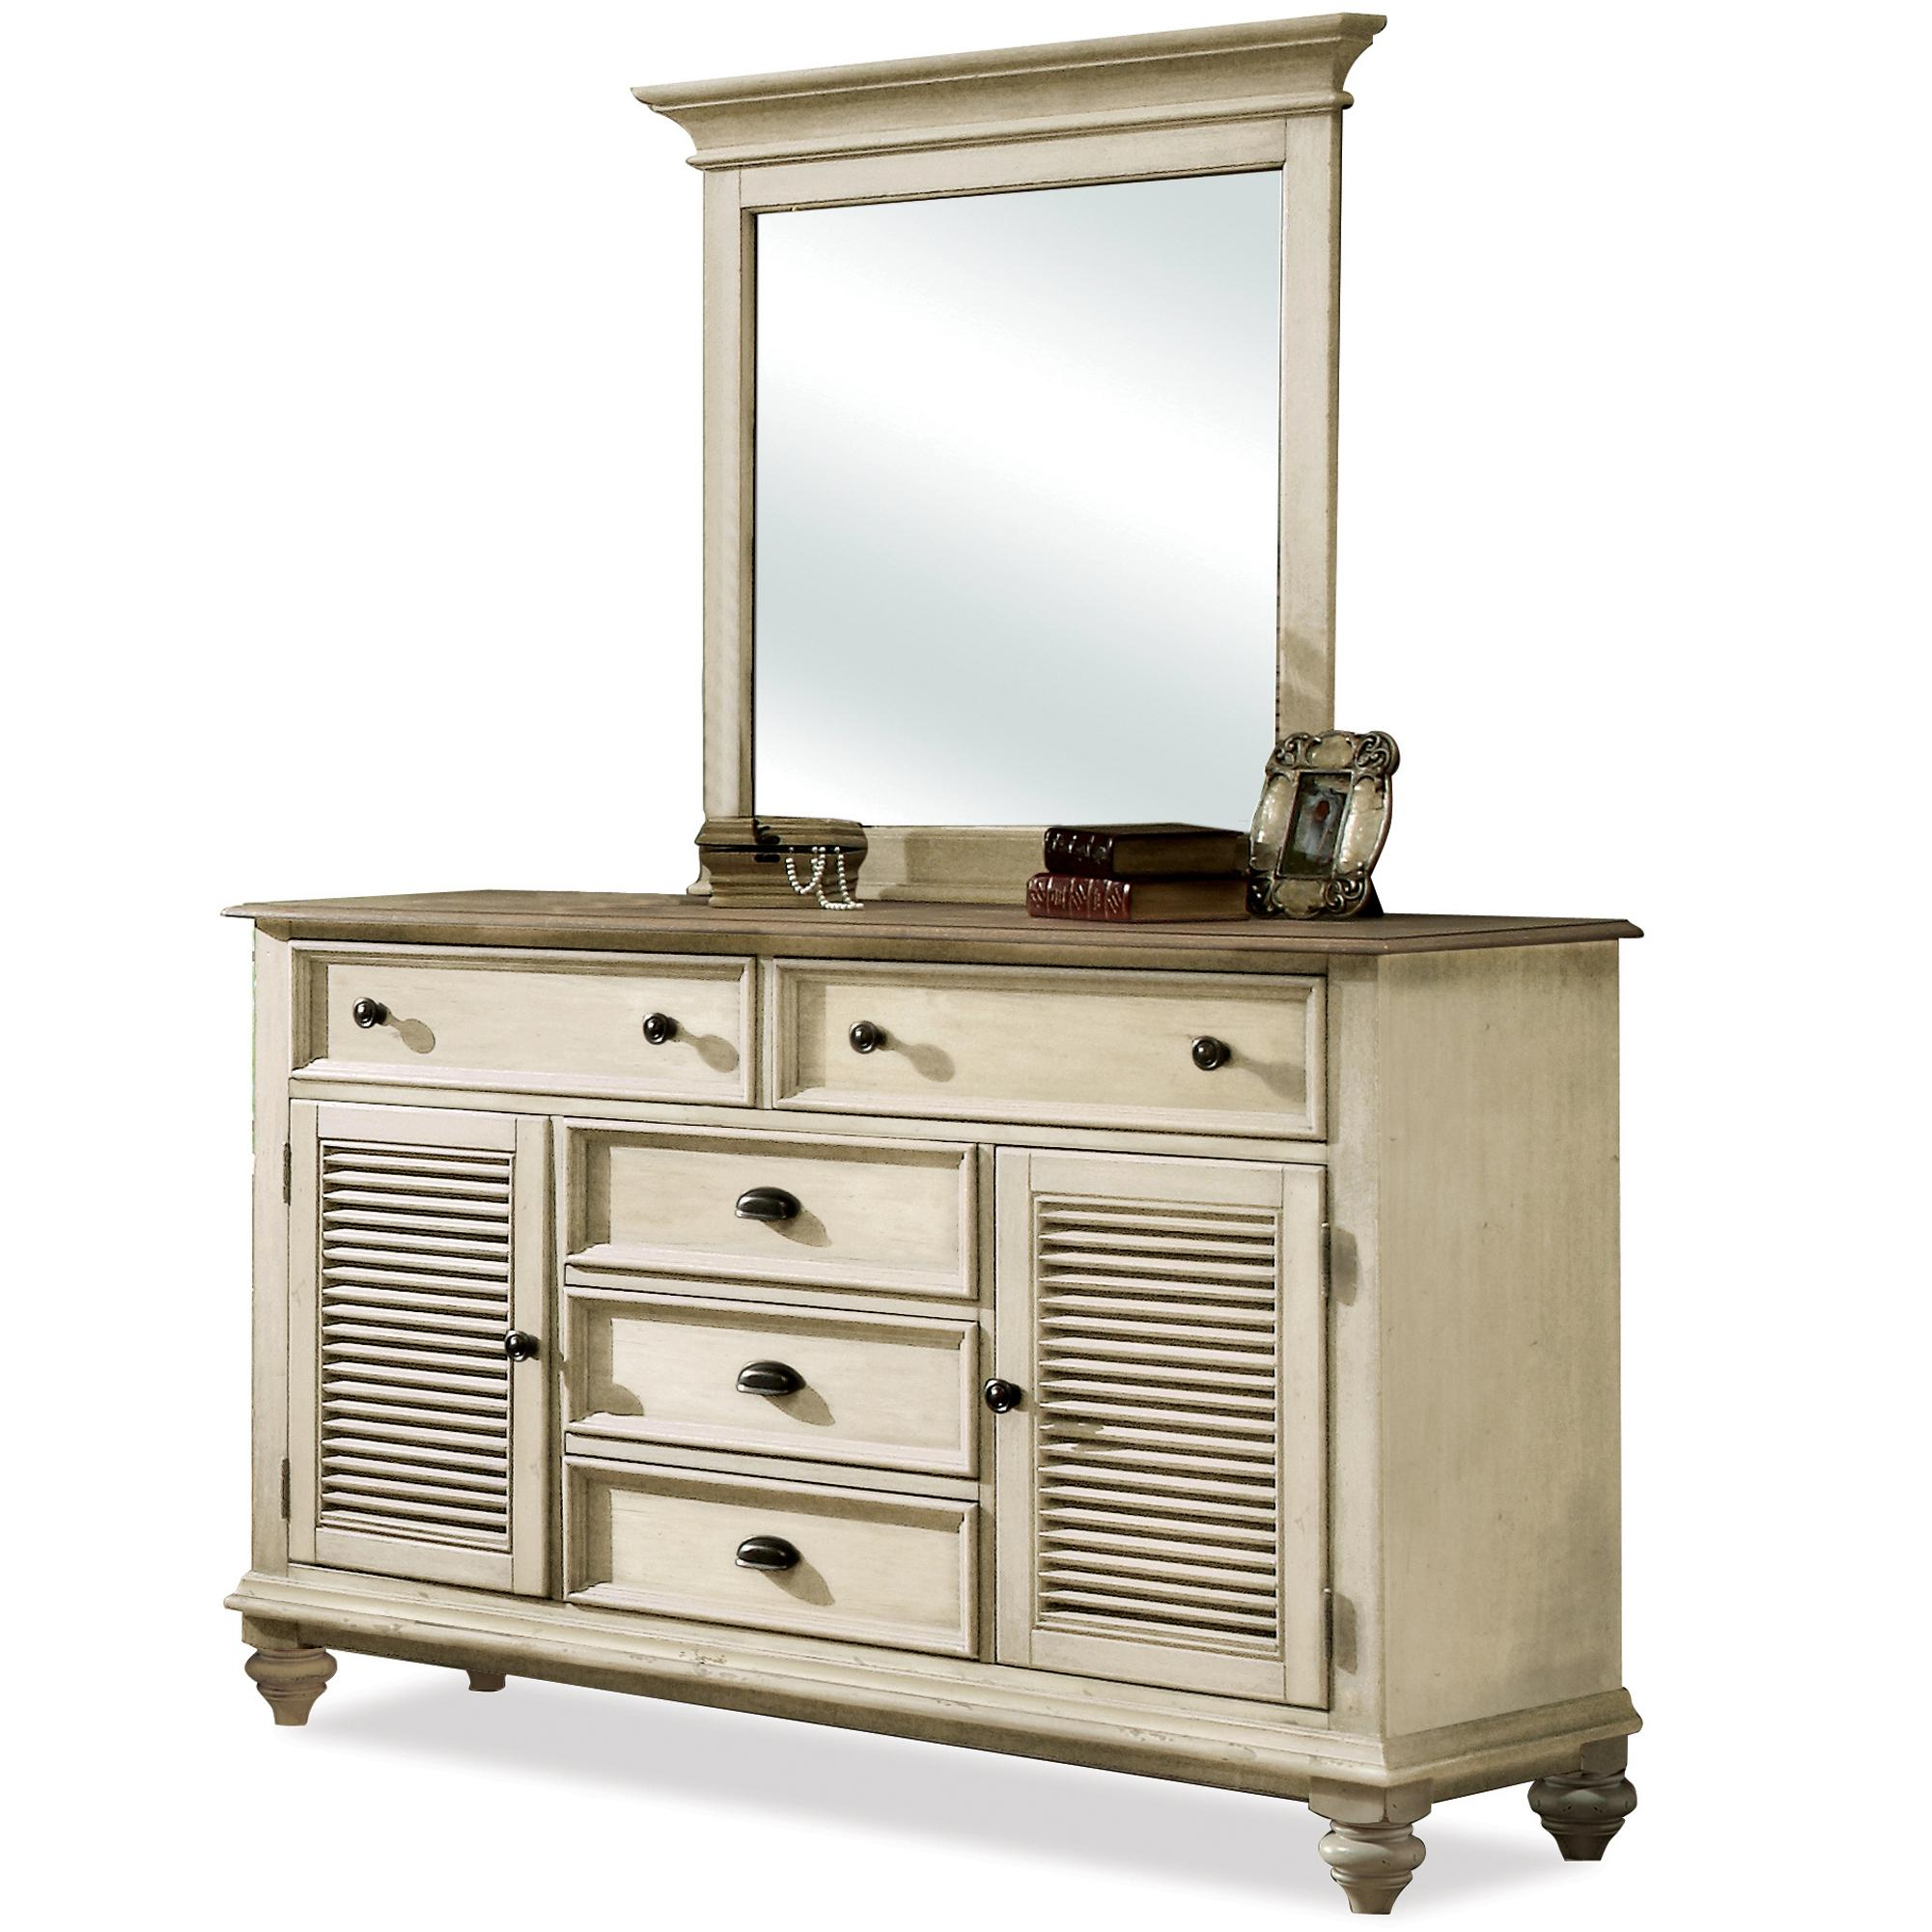 Riverside Furniture Coventry Two Tone Dresser & Mirror  - Item Number: 32560+61